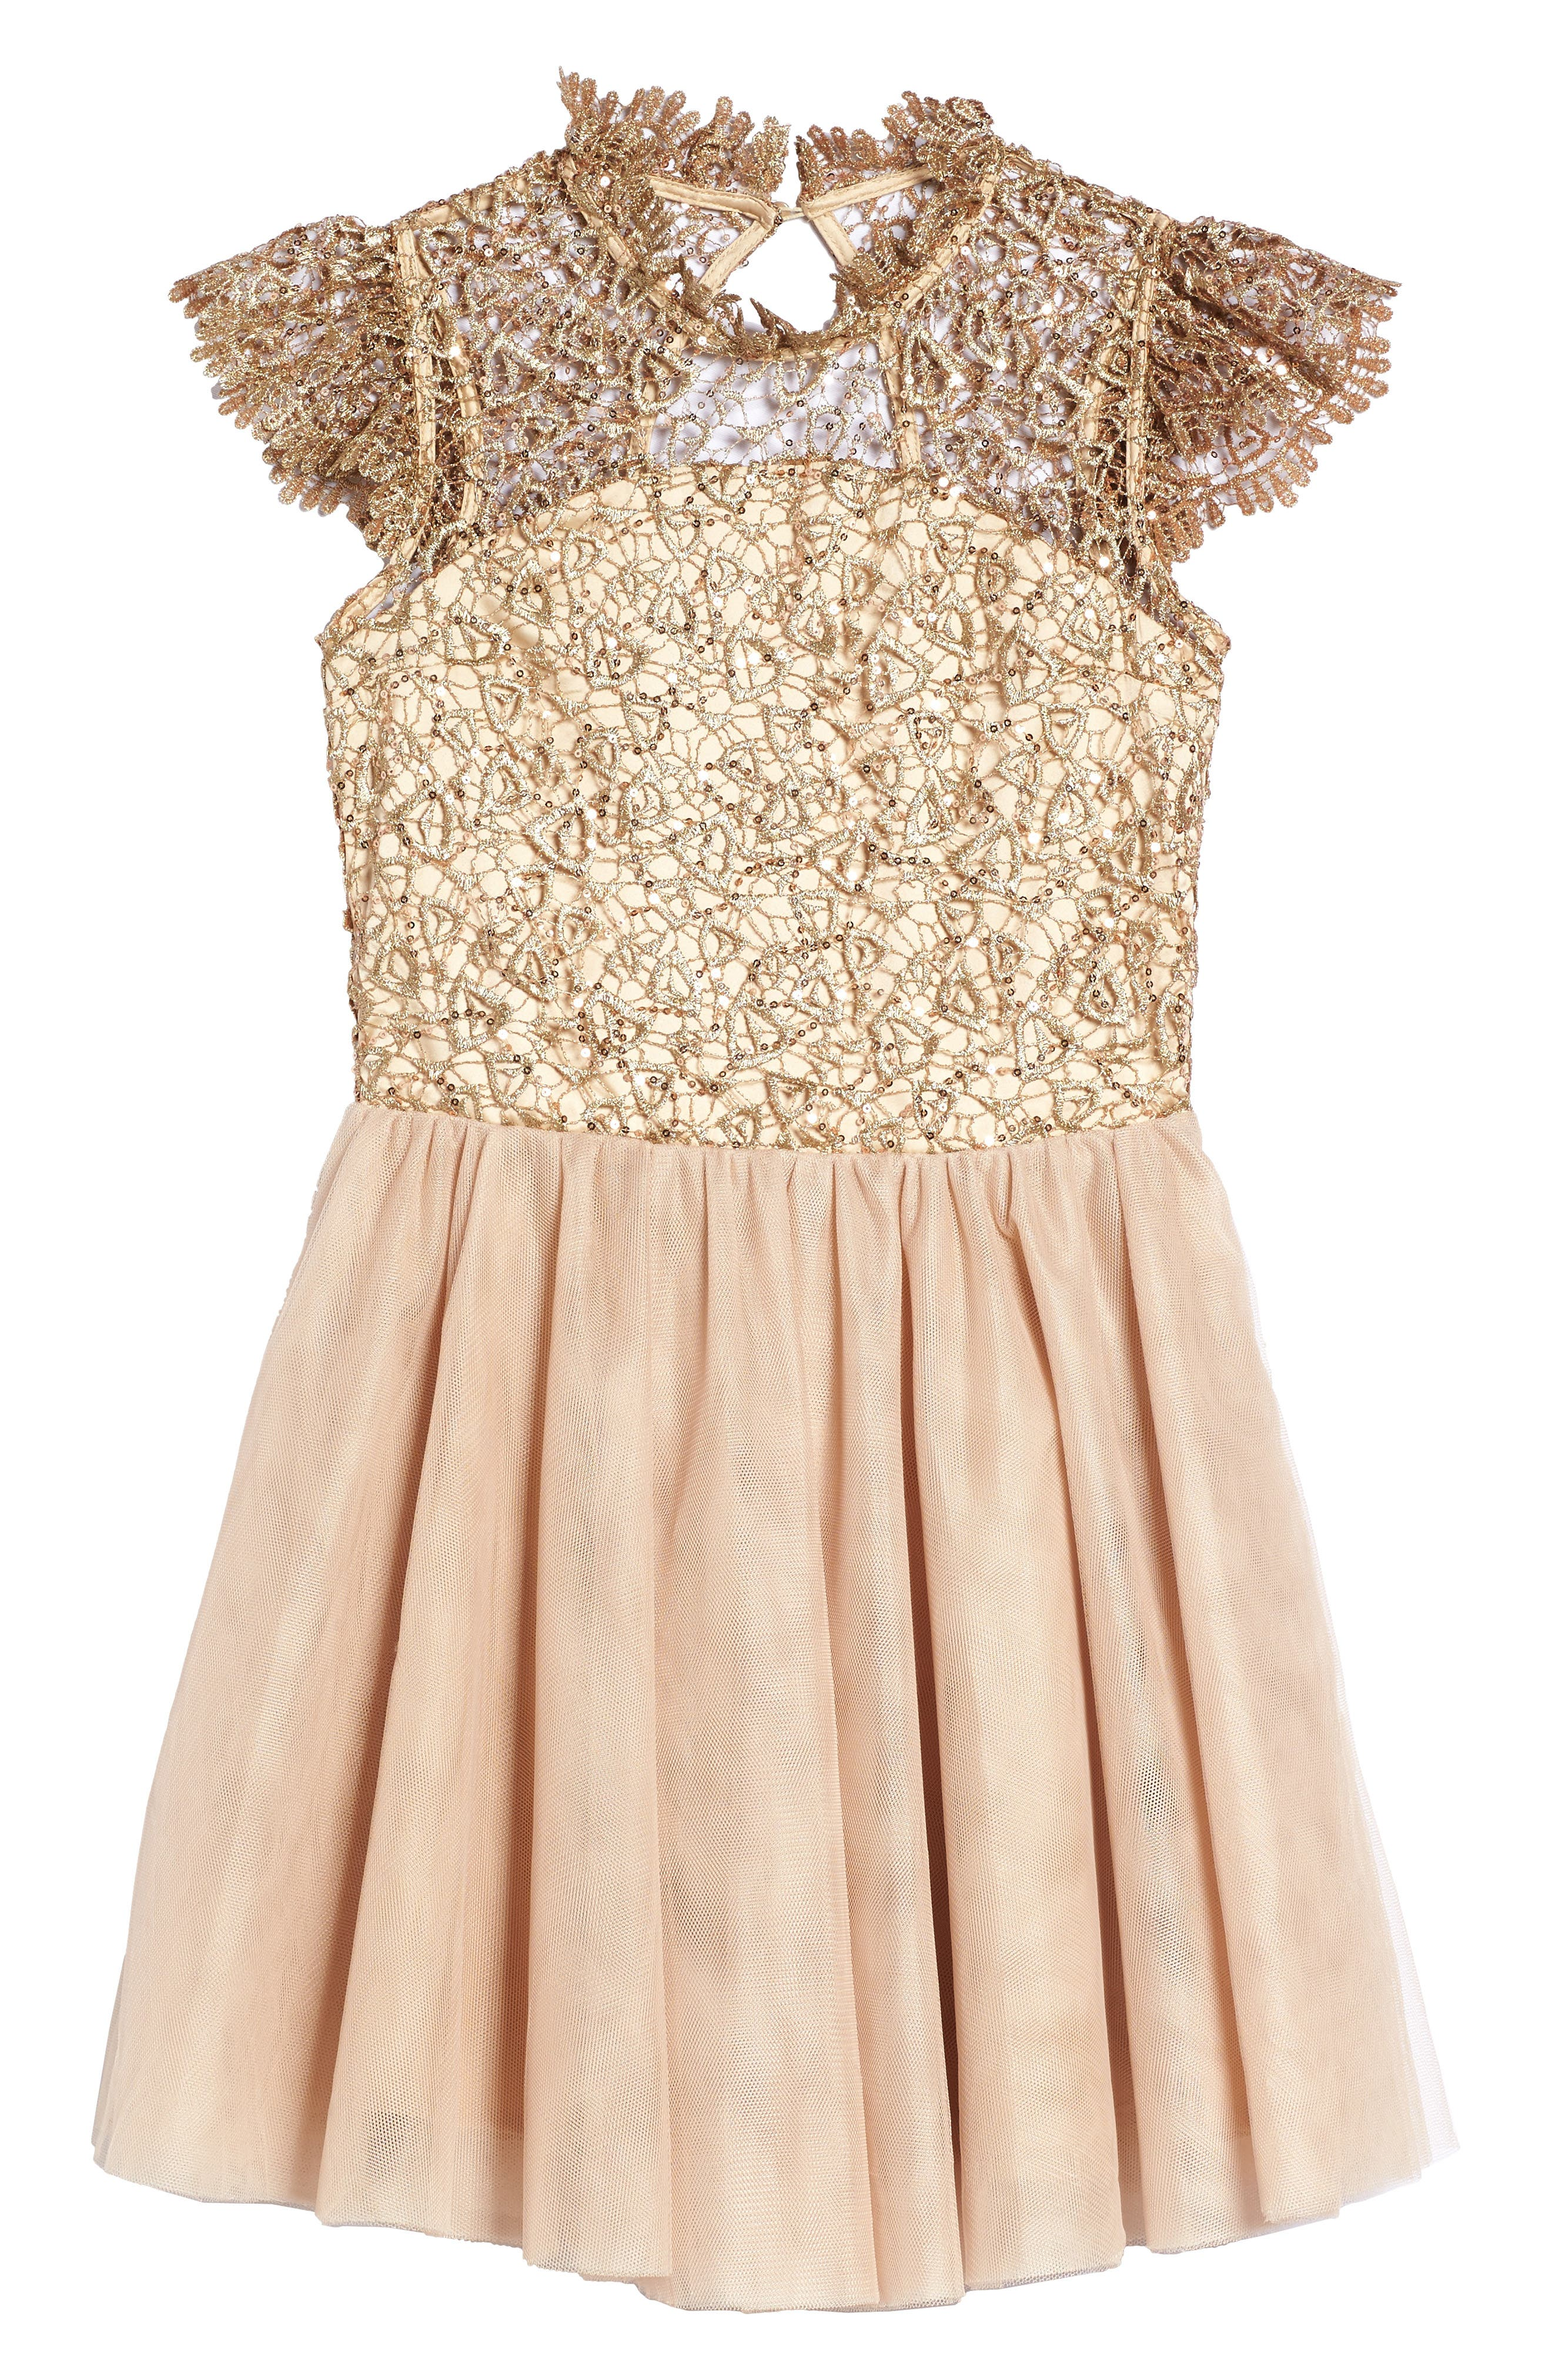 Bling Rocky Dress,                         Main,                         color, Tan